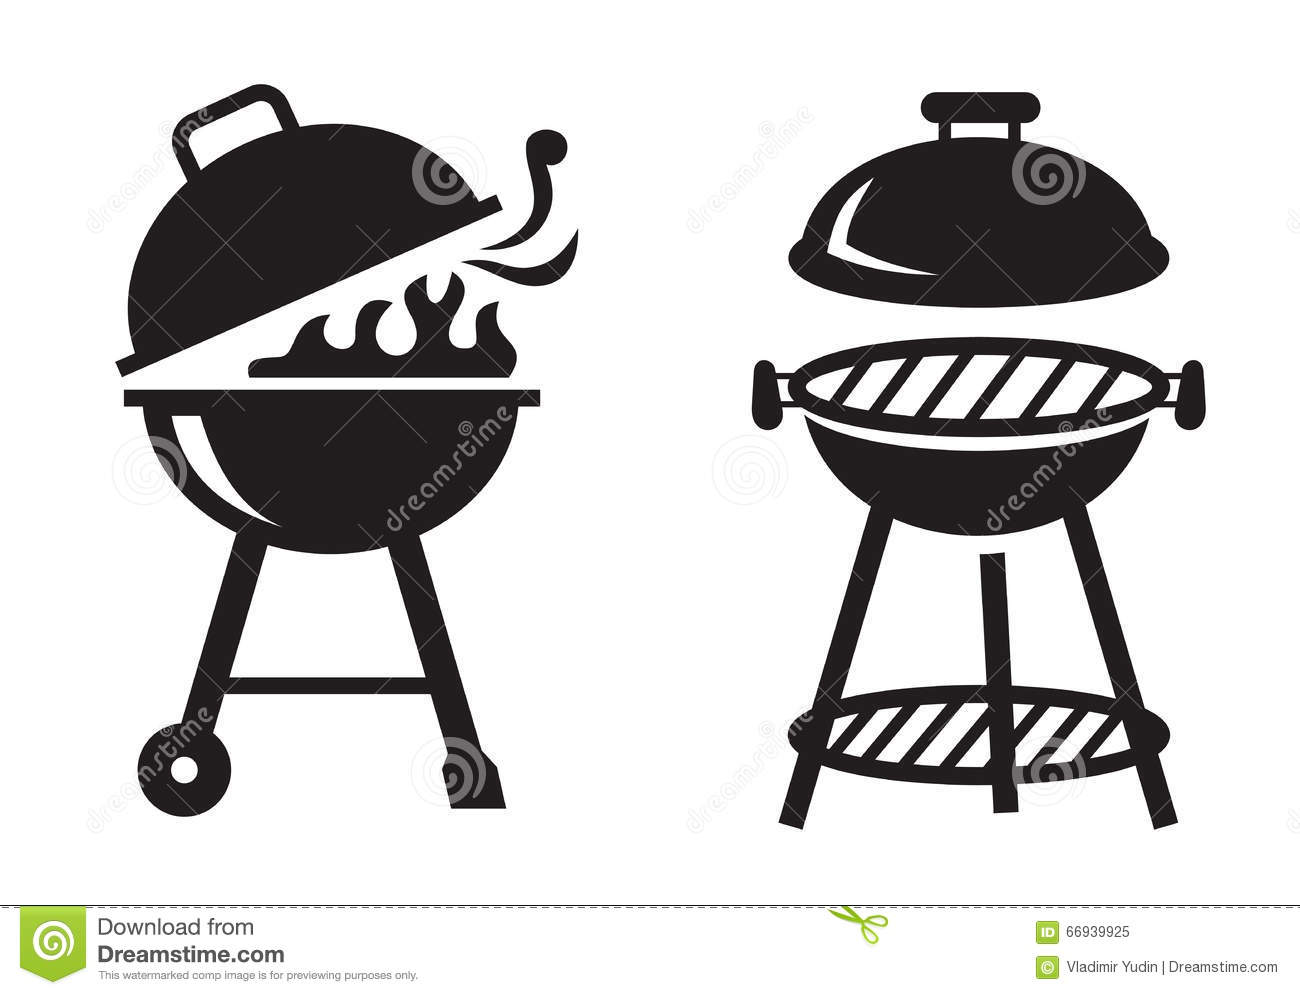 Rustic Outdoor Grill Time Royalty Free Stock Photography